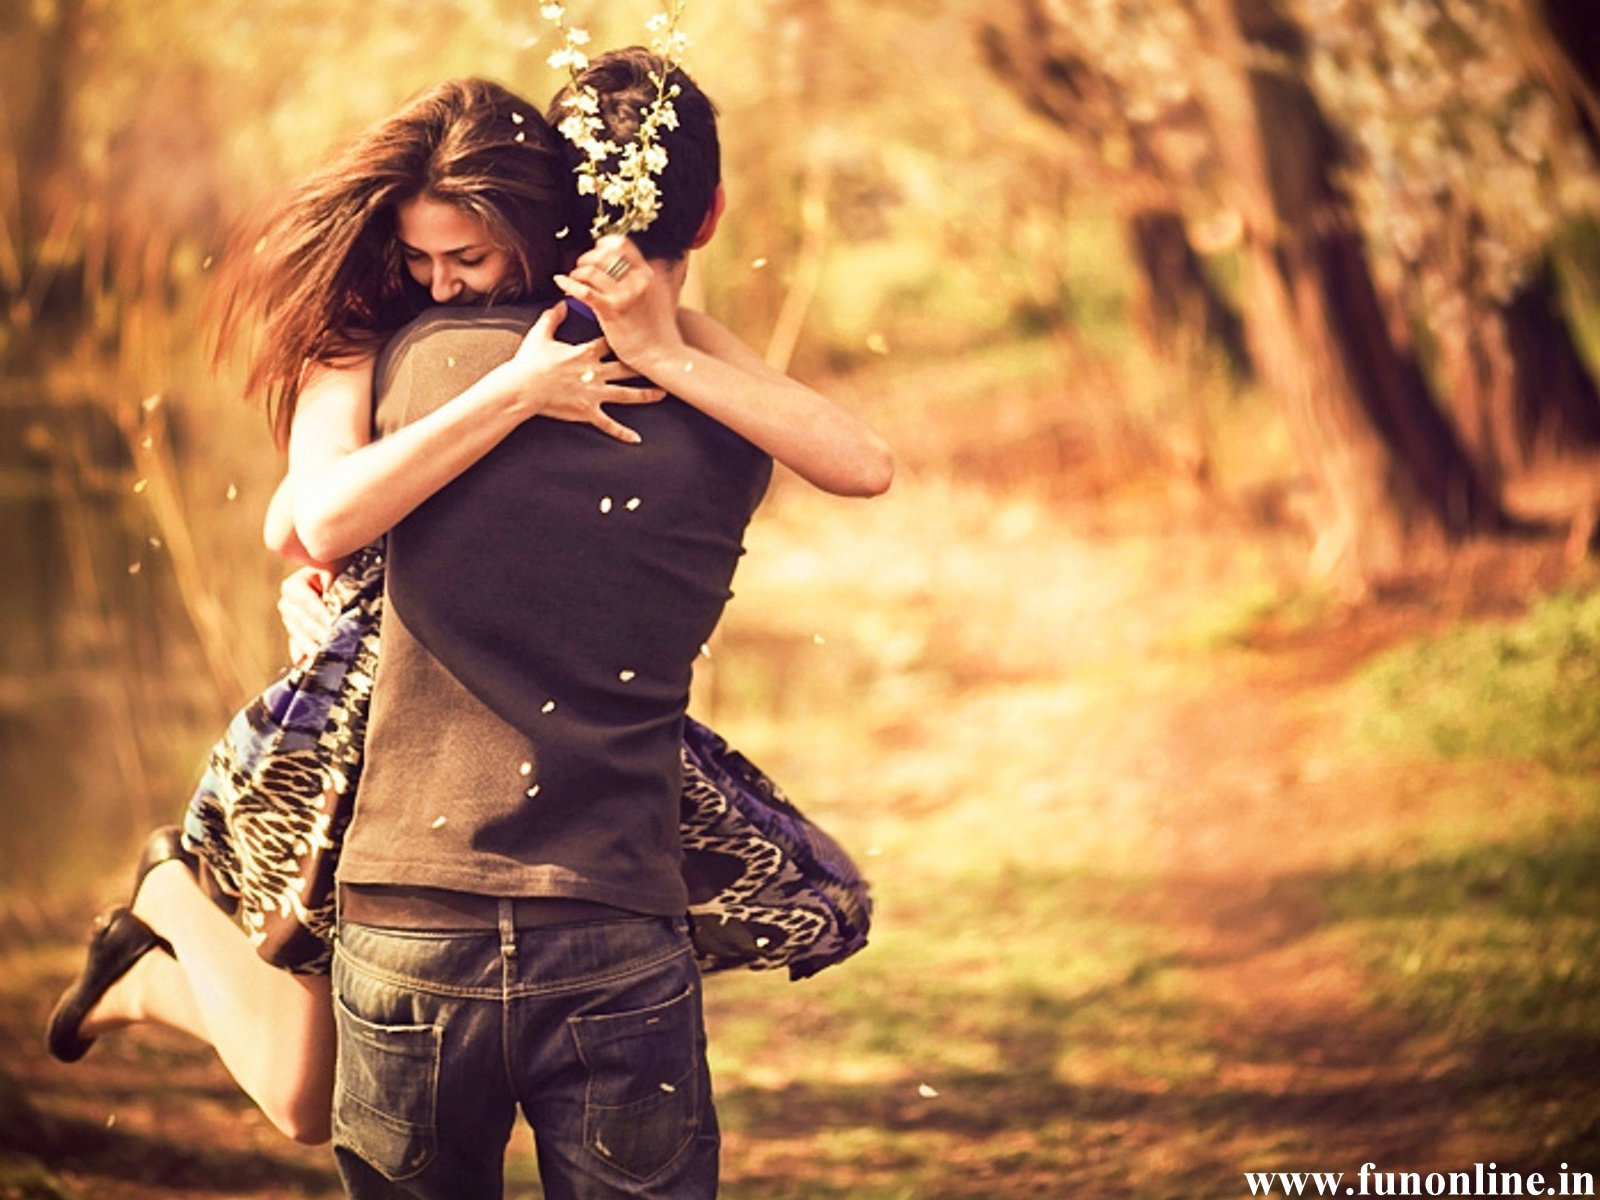 pleasing-couple-love-hug-wallpaper